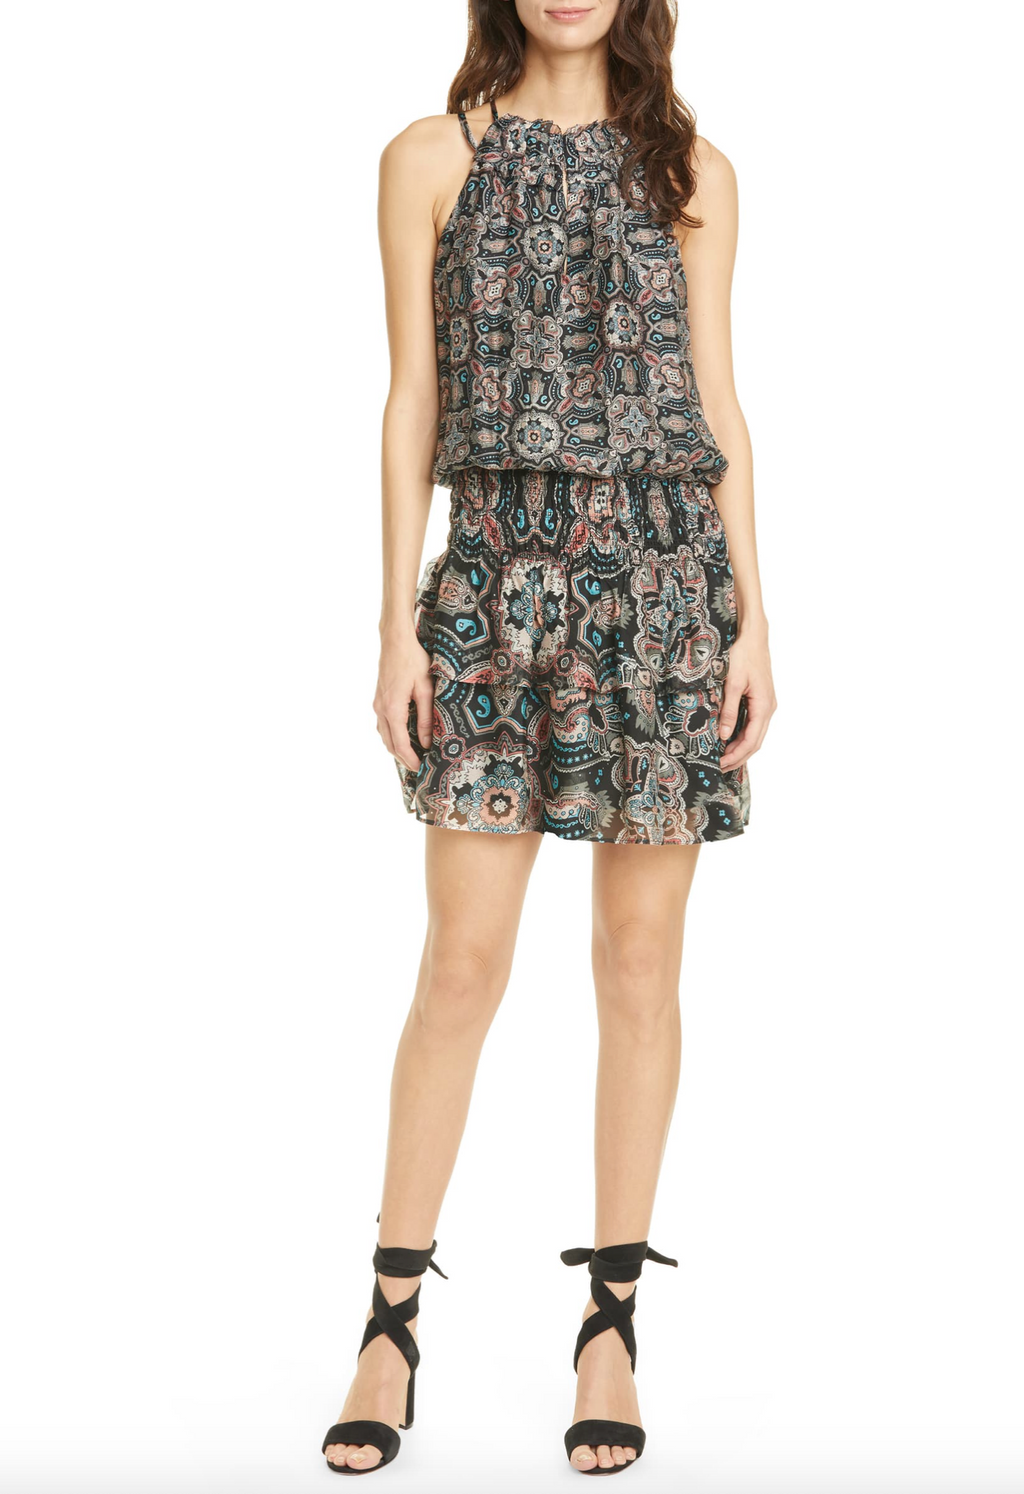 Ramy Brook - The Brady Dress in Black Combo Print